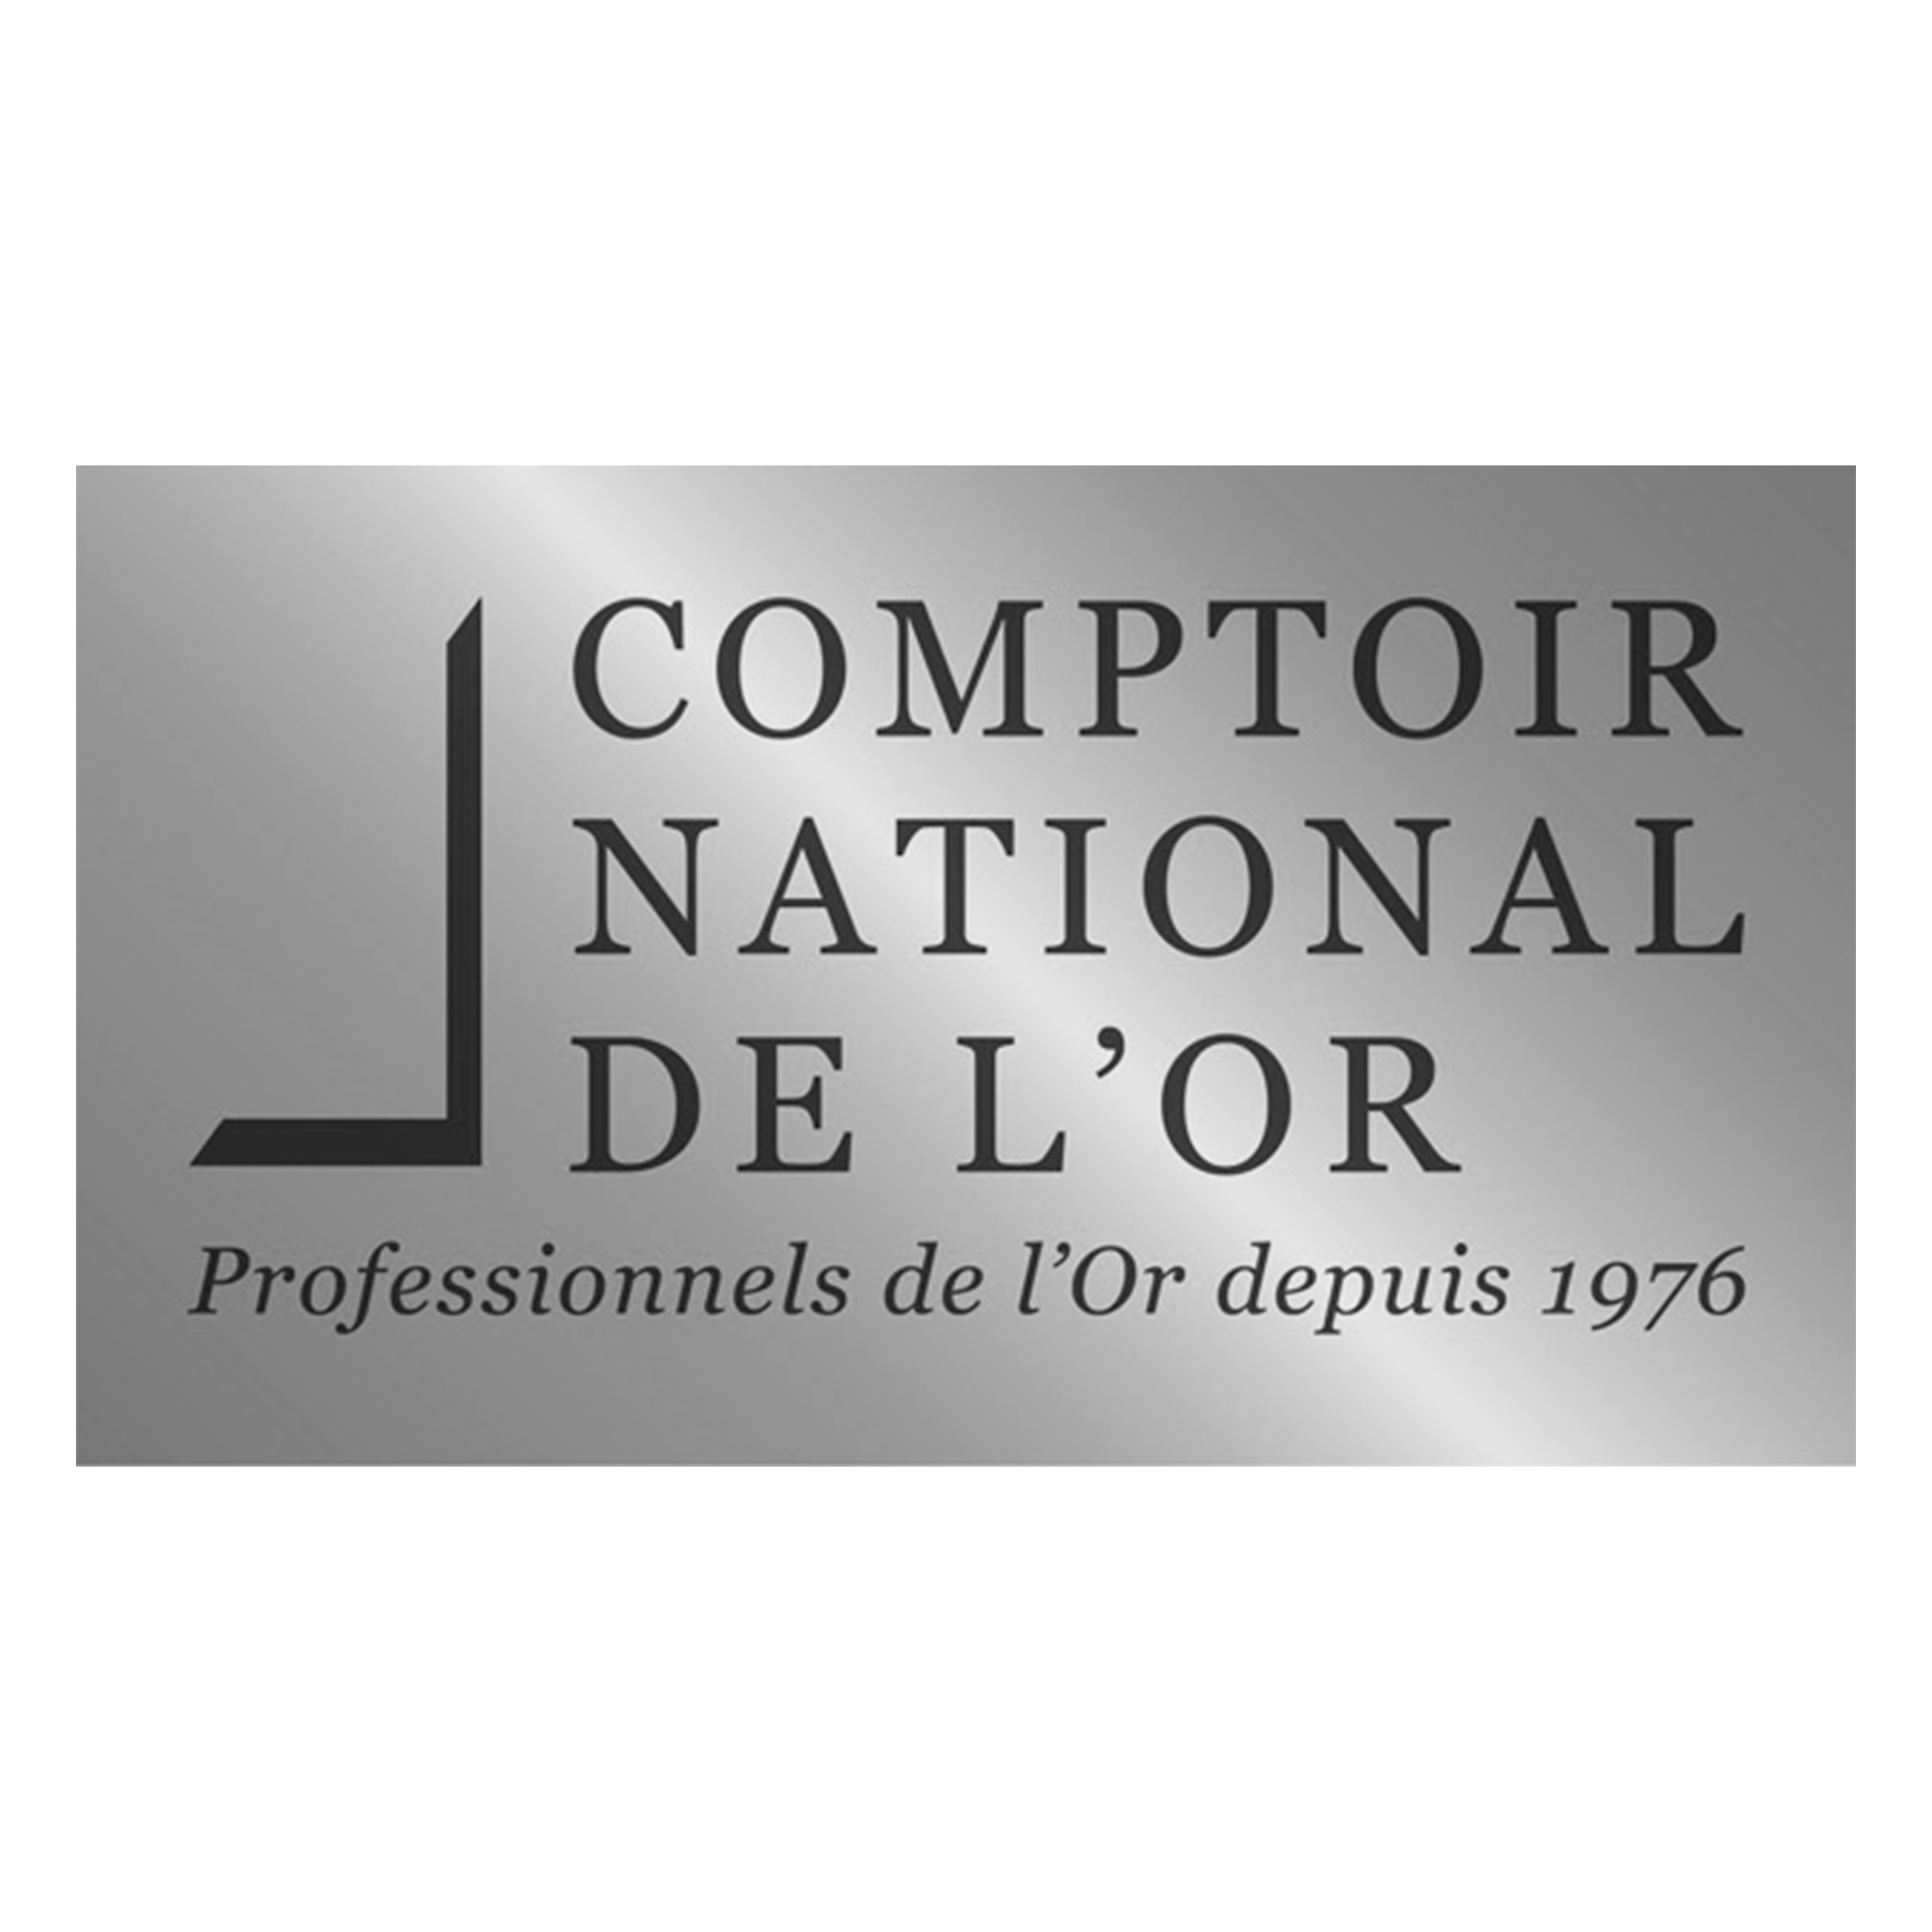 Comptoir national de l'or